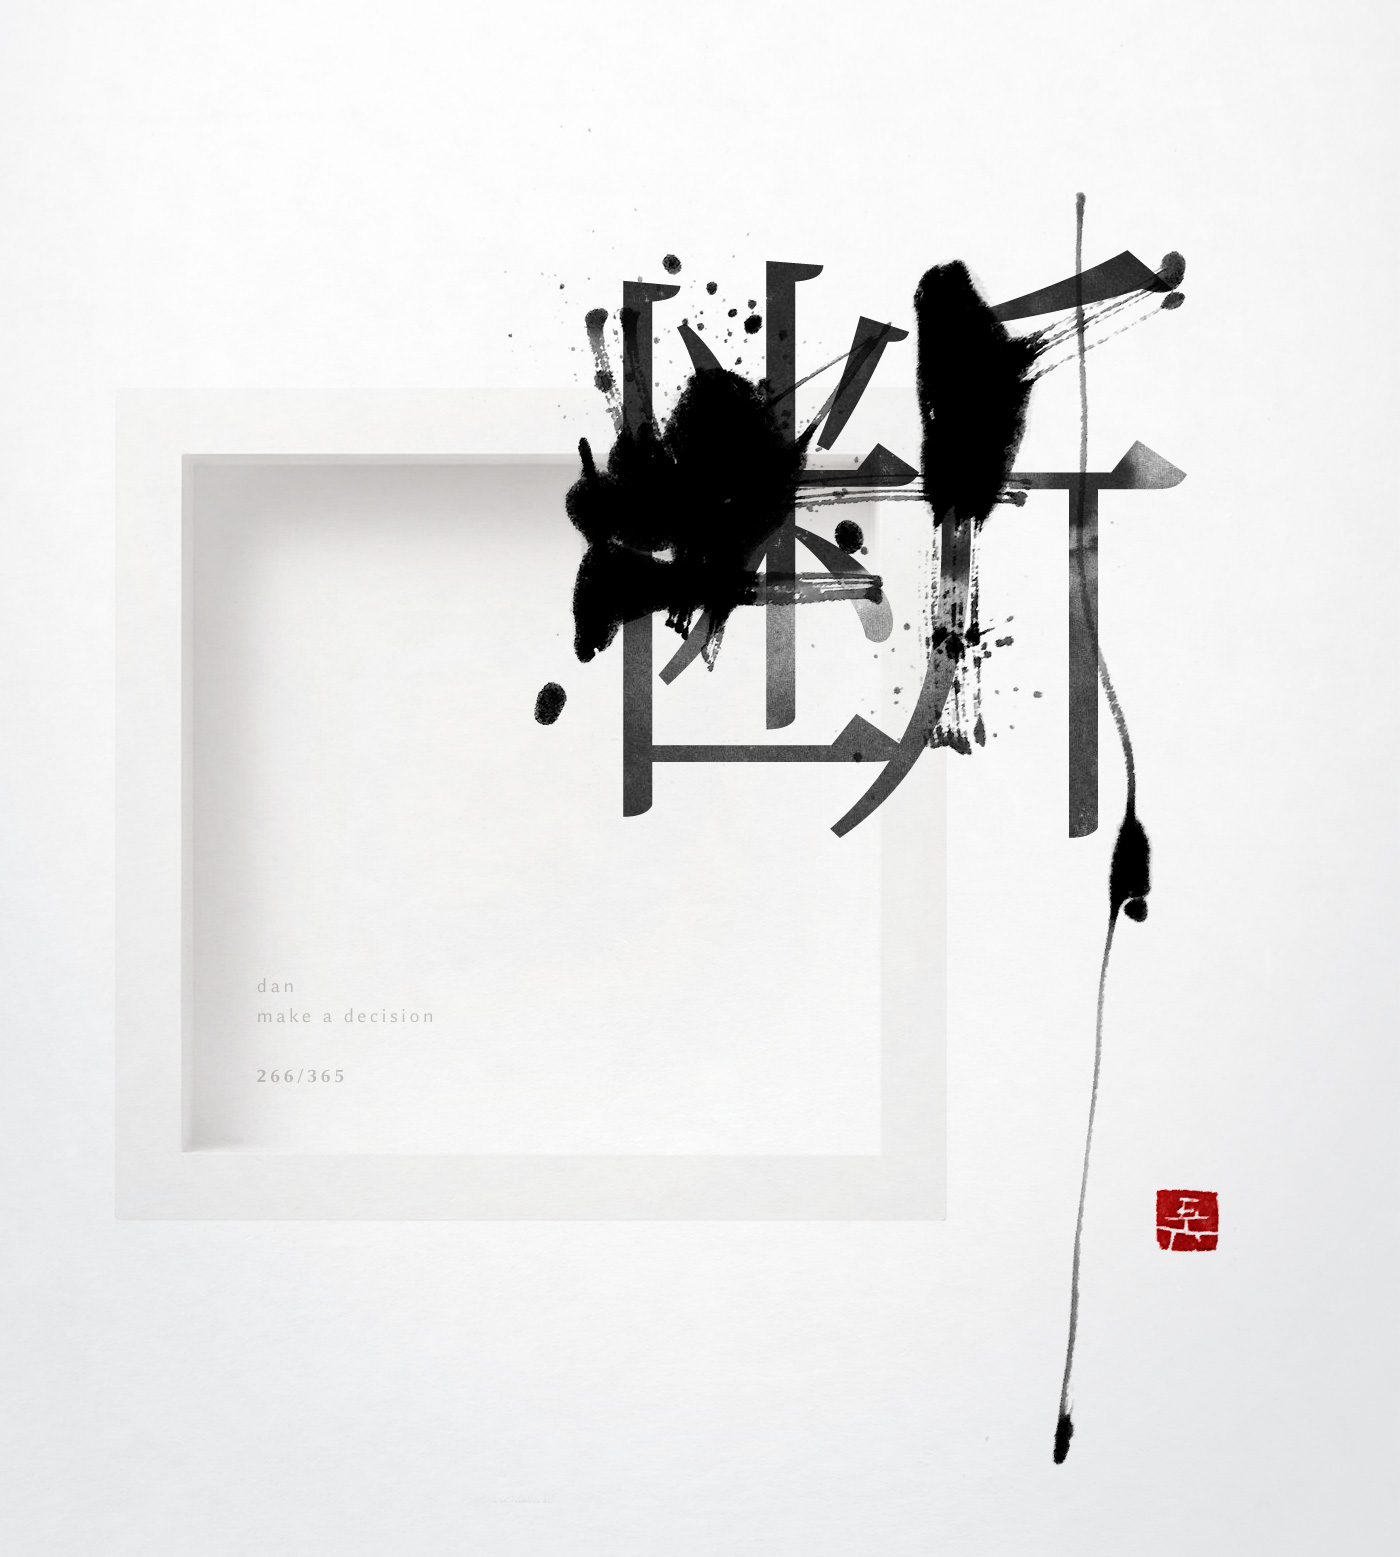 断 | make a decision 書道作品 japaneseart japanese calligraphy 書家 田川悟郎 Goroh Tagawa